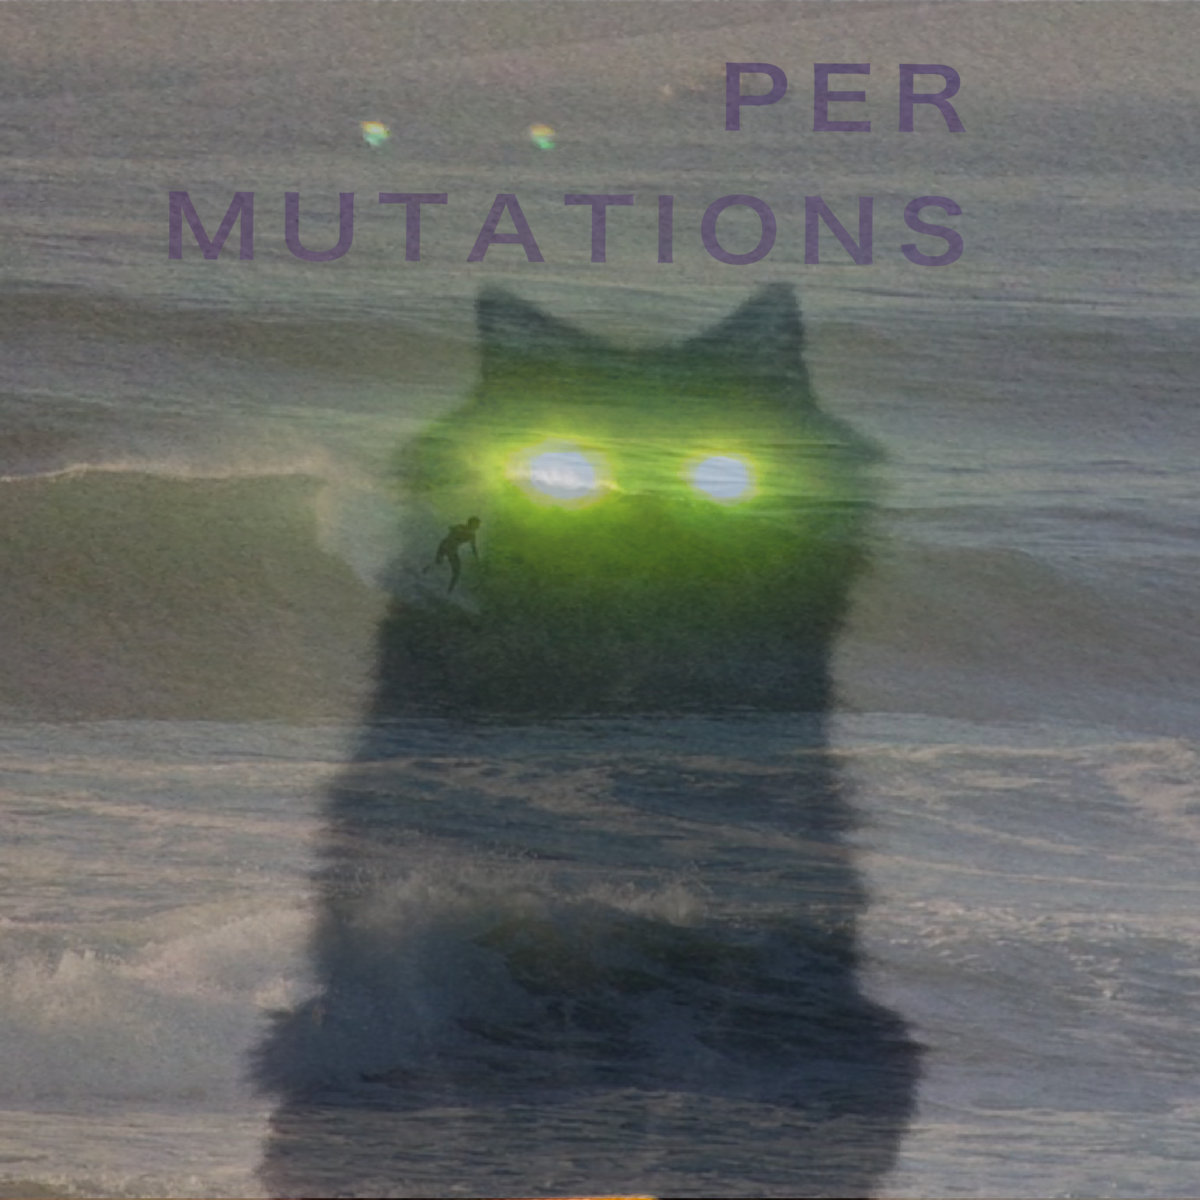 Per Mutations - Surfing in the Phenomenal World